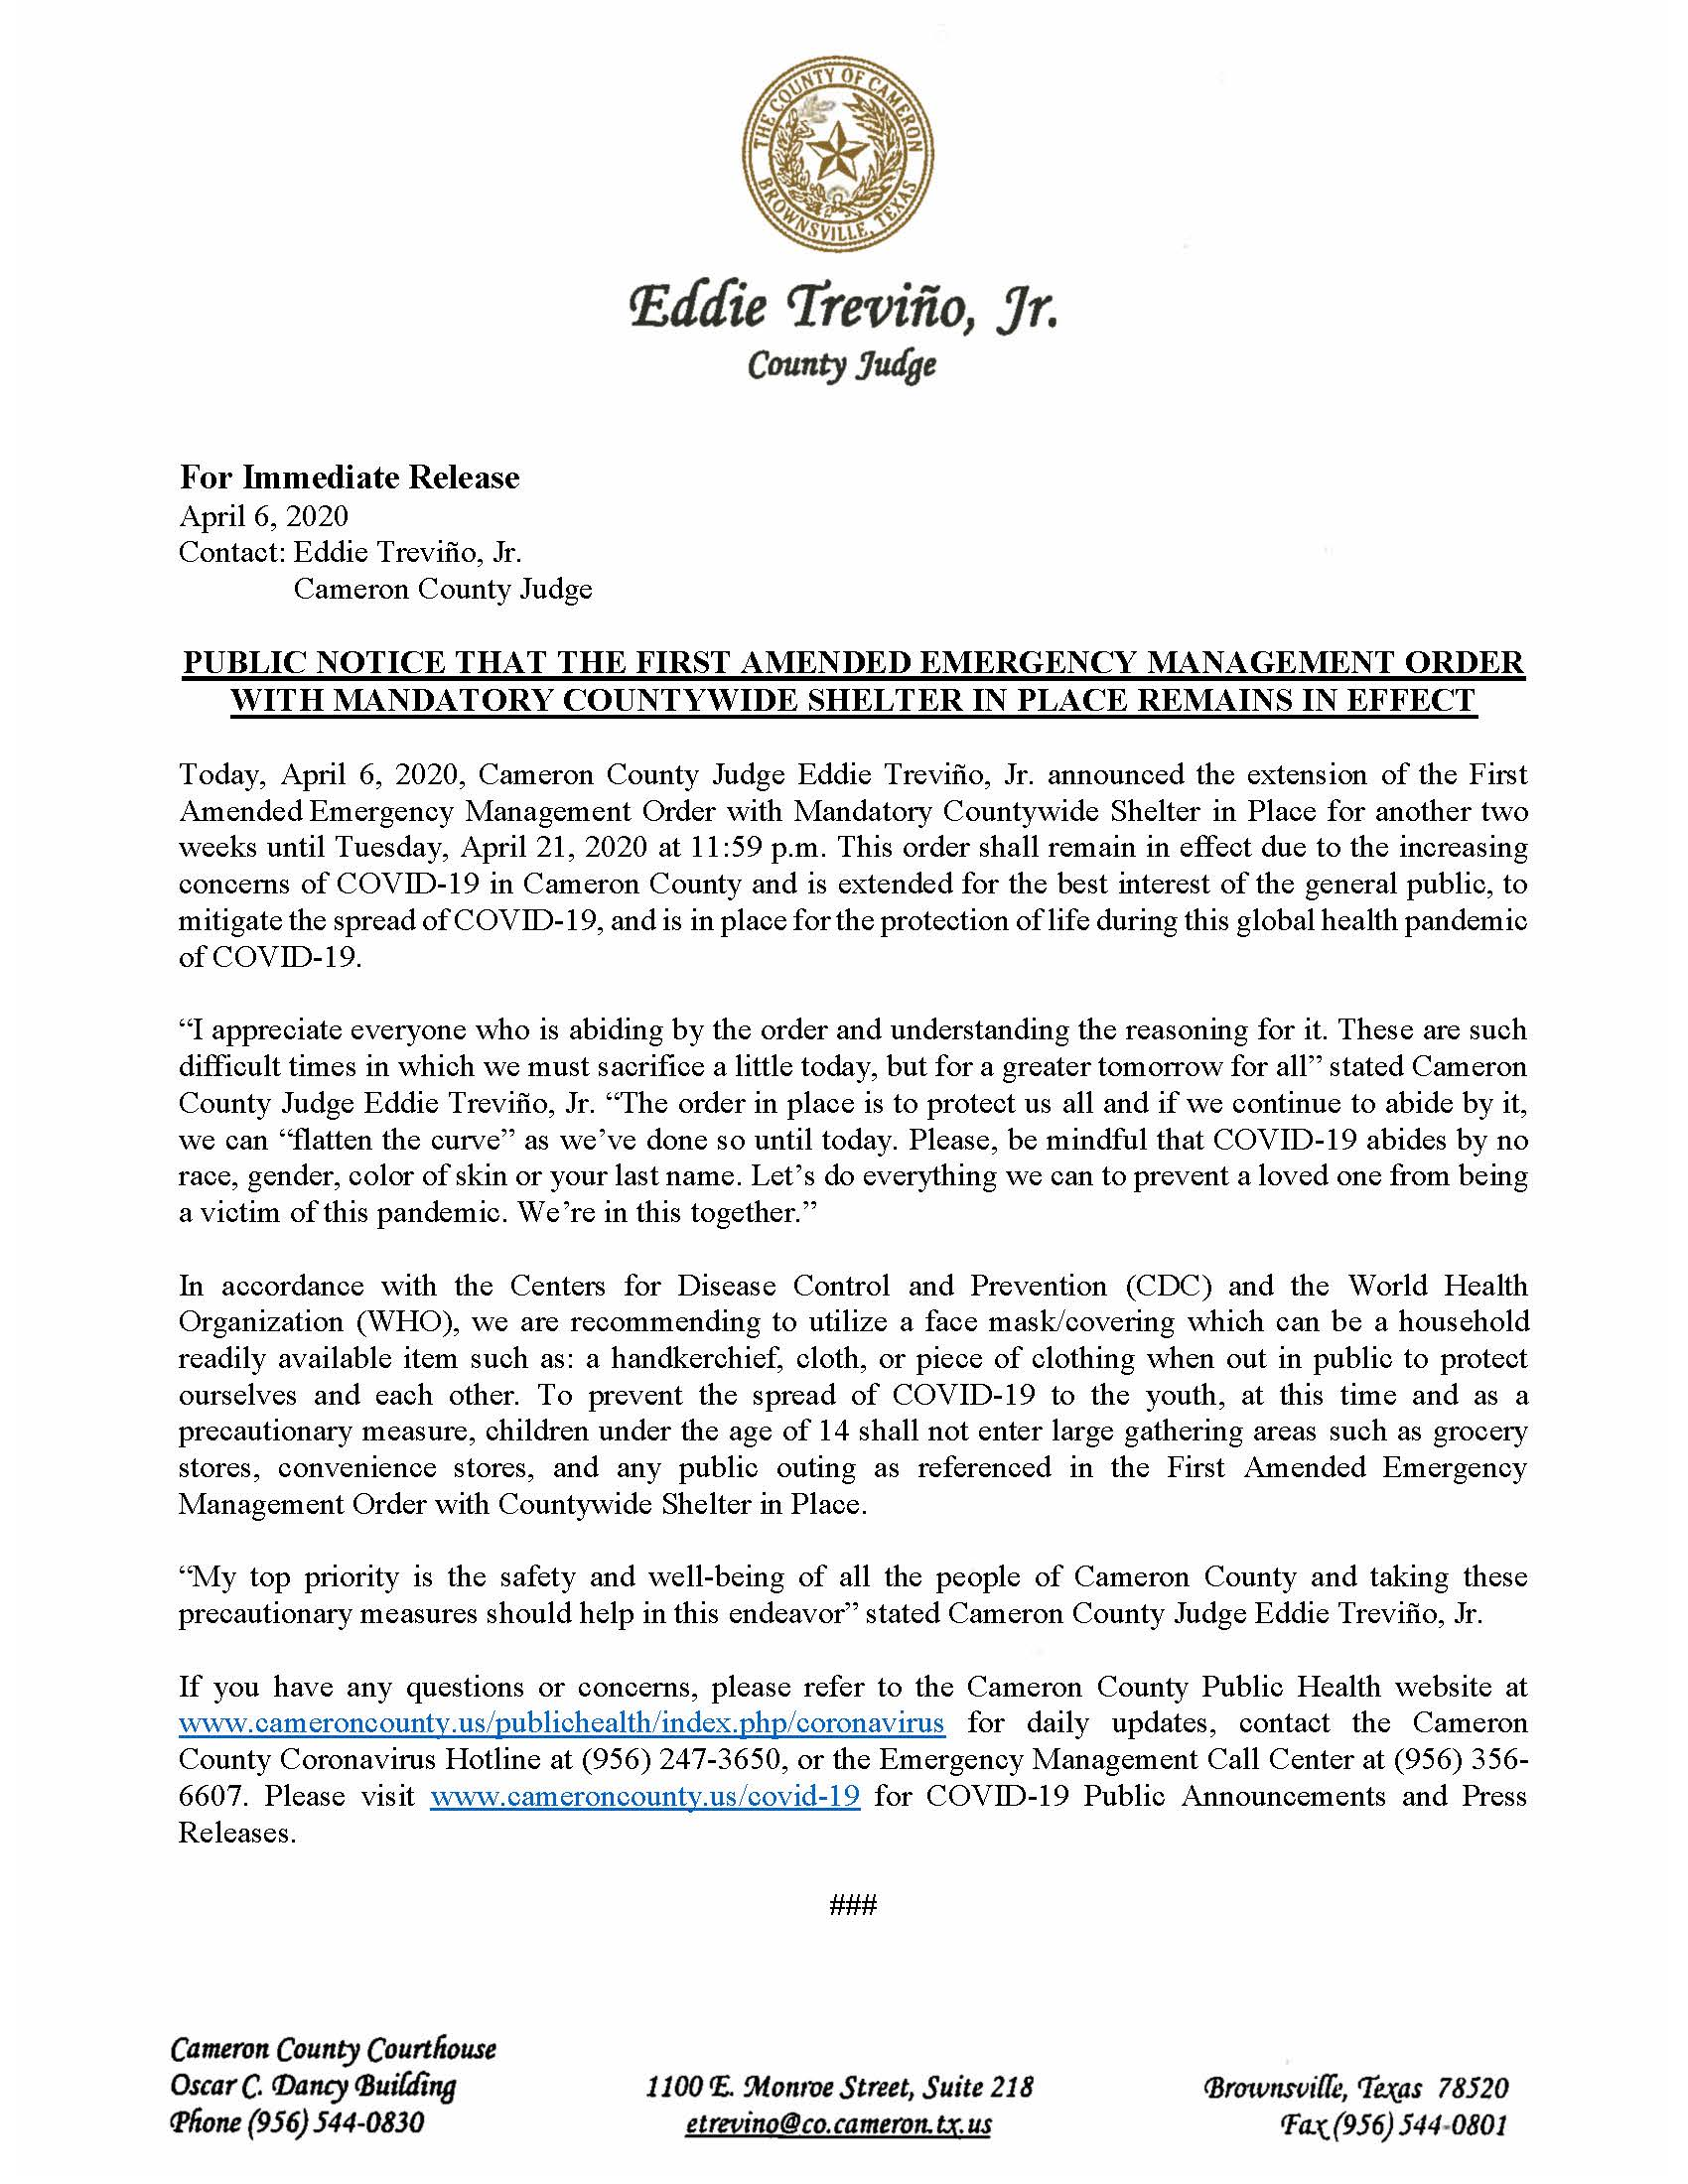 For Immediate Release - Cameron County Housing Authority Application